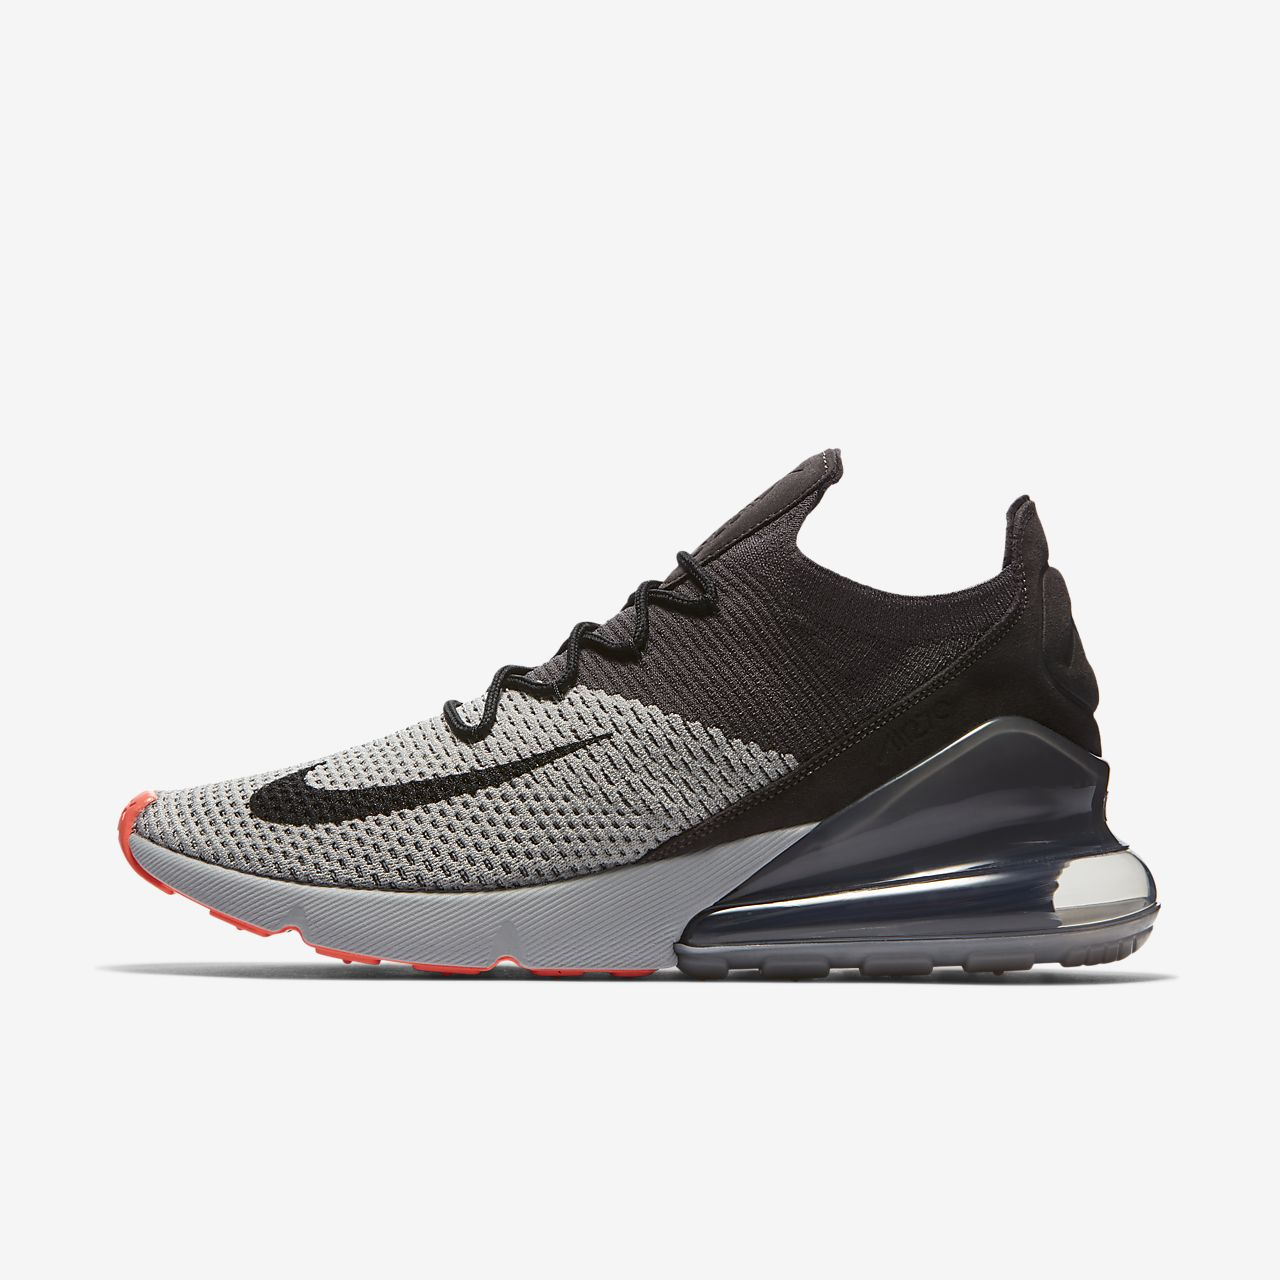 1486eb2f6738 Nike Air Max 270 Flyknit Men s Shoe. Nike.com GB